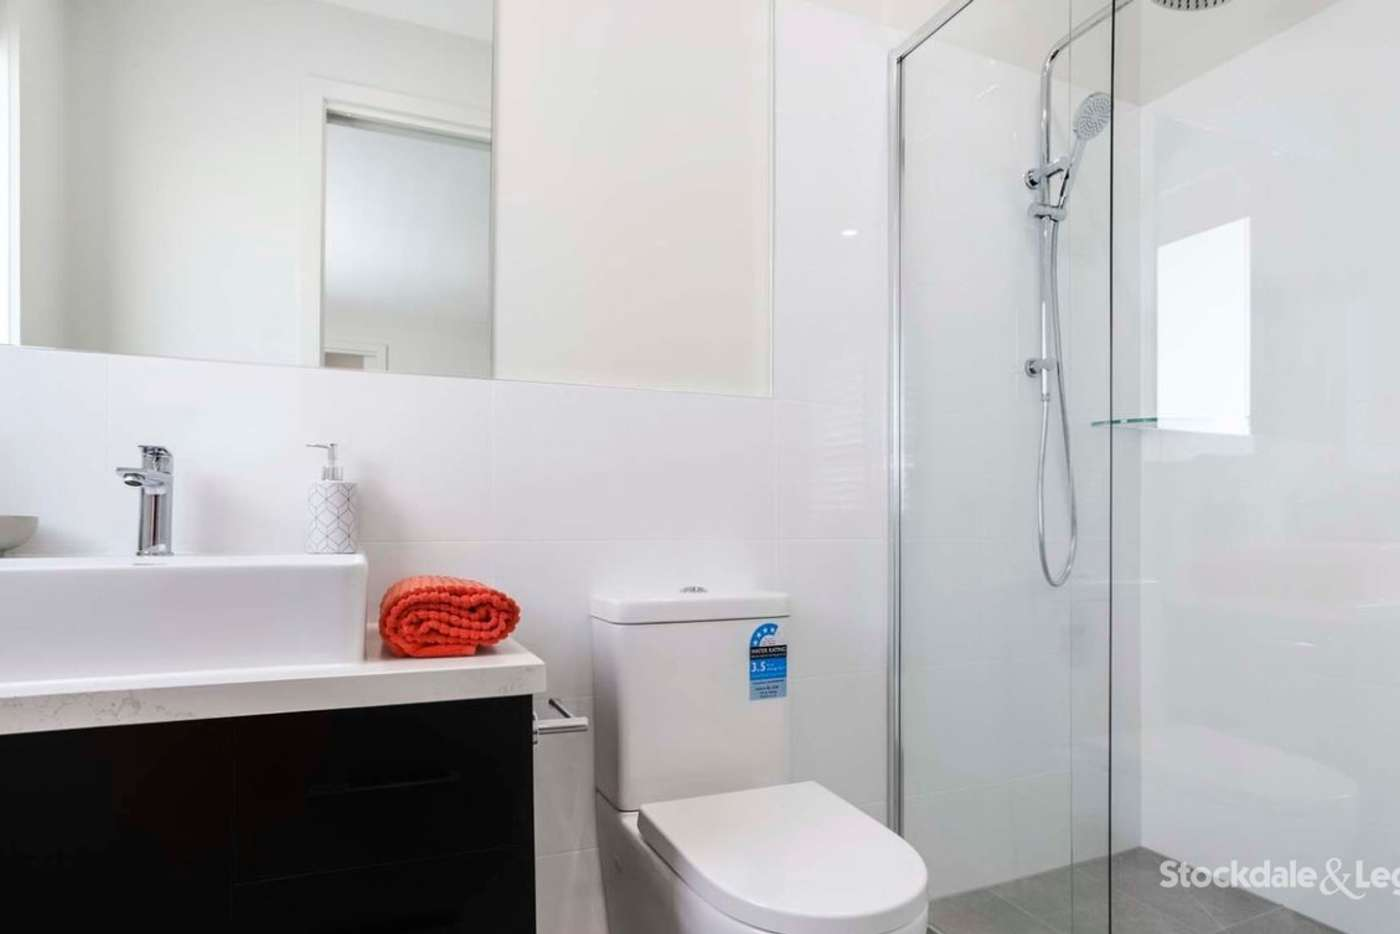 Sixth view of Homely house listing, 2/10 Woodstock Drive, Gladstone Park VIC 3043